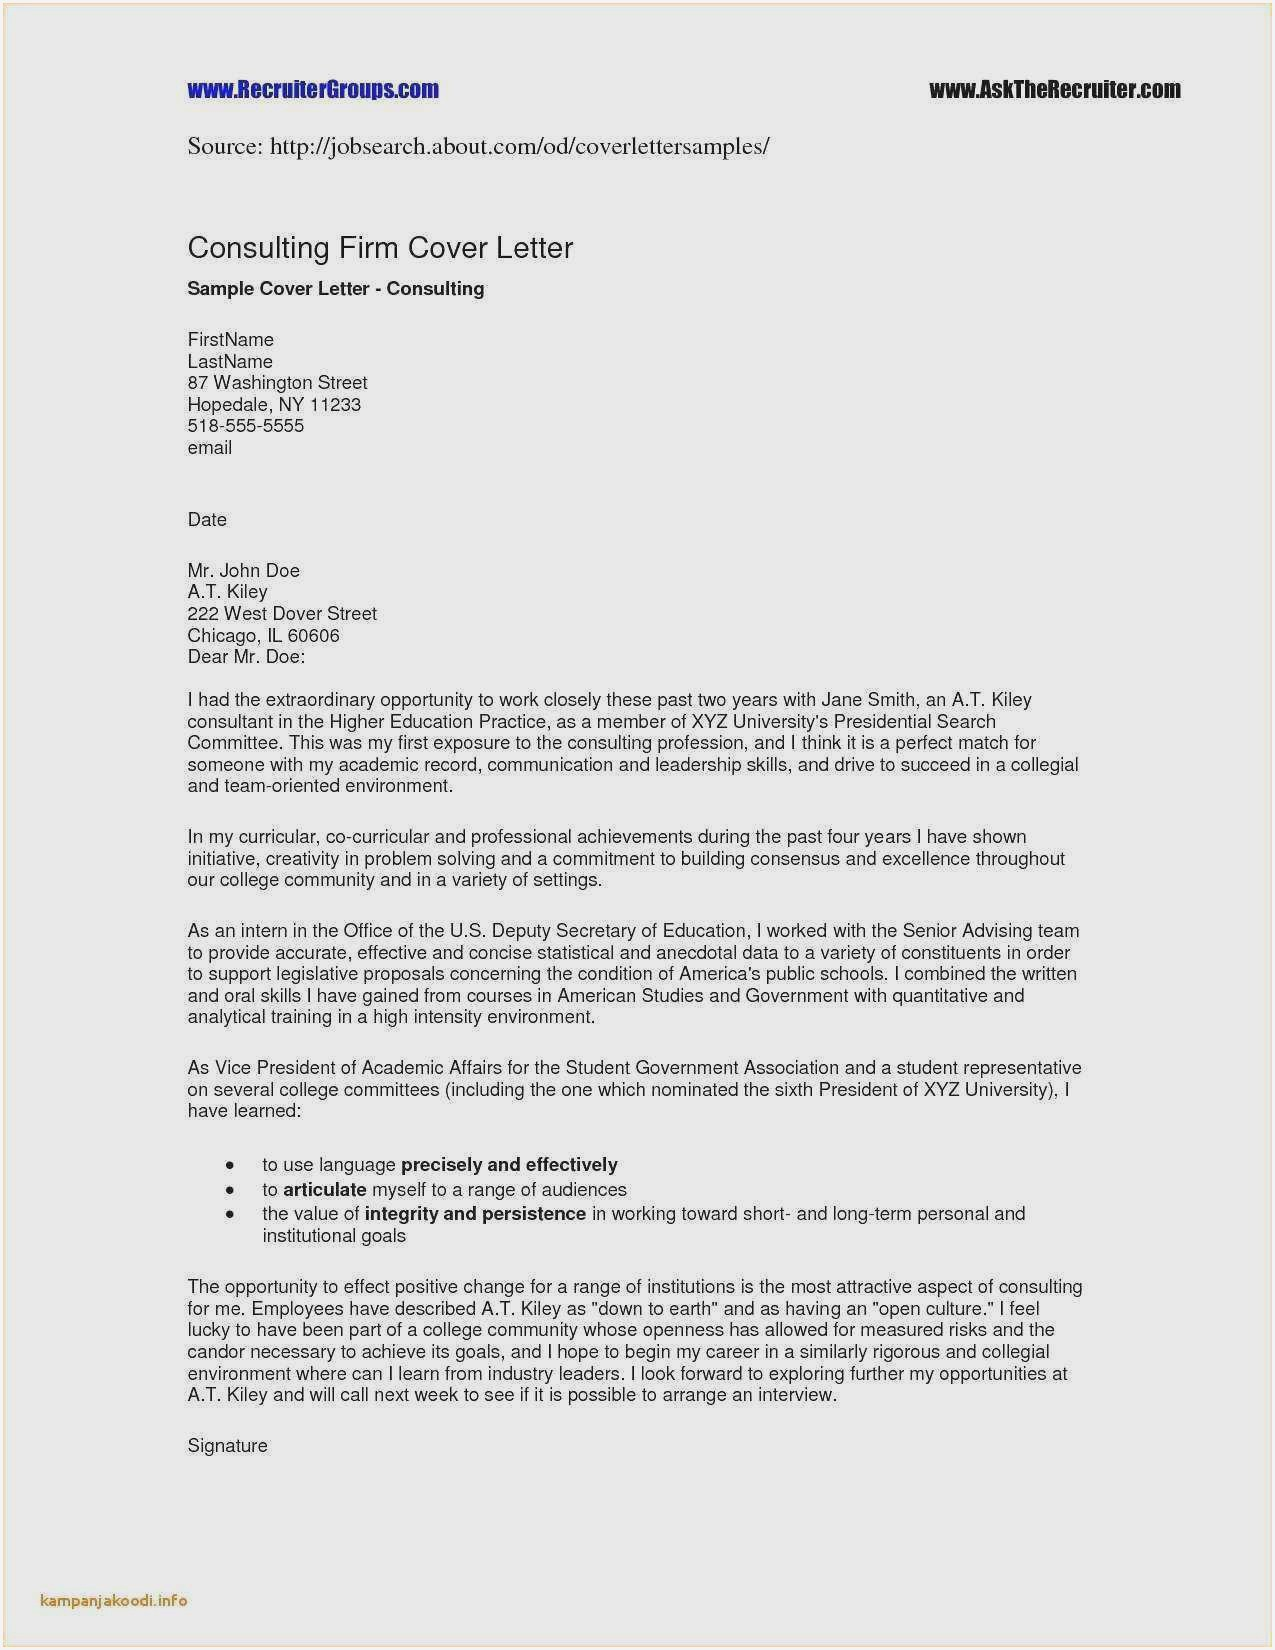 free line resume templates sample hobbies for teacher copy and paste travel executive Resume Free Line Cook Resume Templates